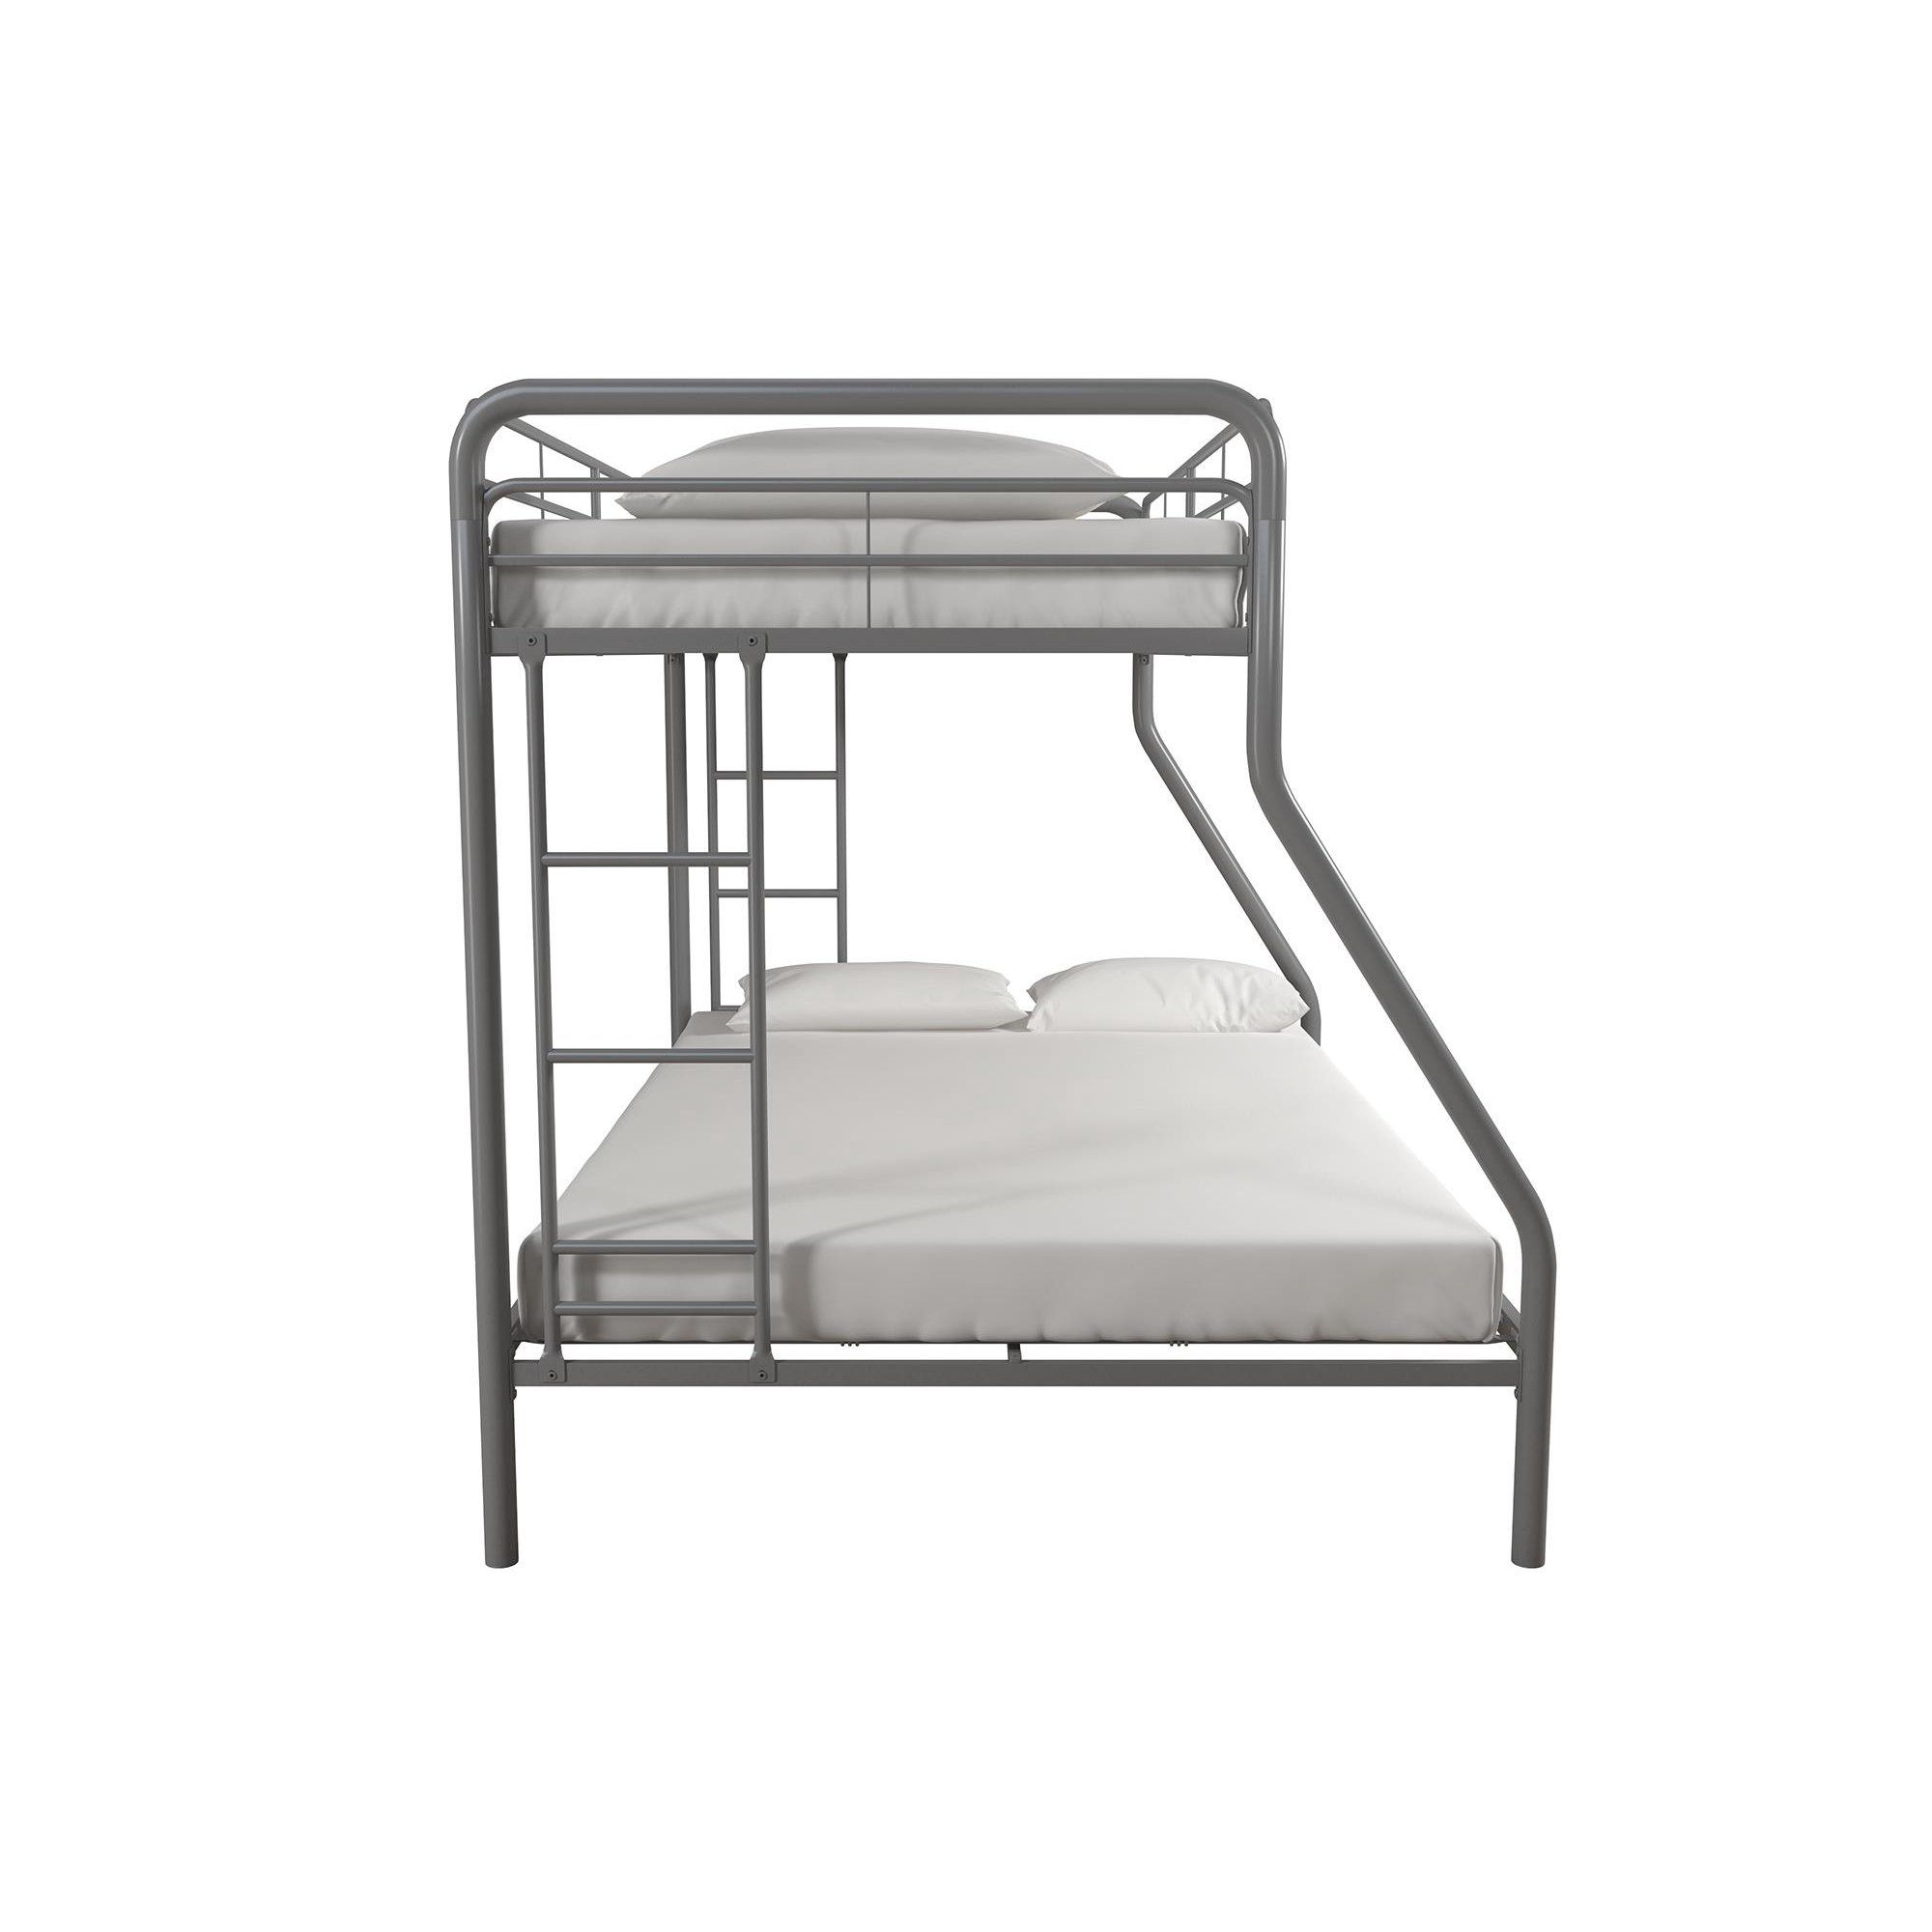 Dhp Twin Over Full Metal Bunk Bed Frame Multiple Colors Walmart Com Beds